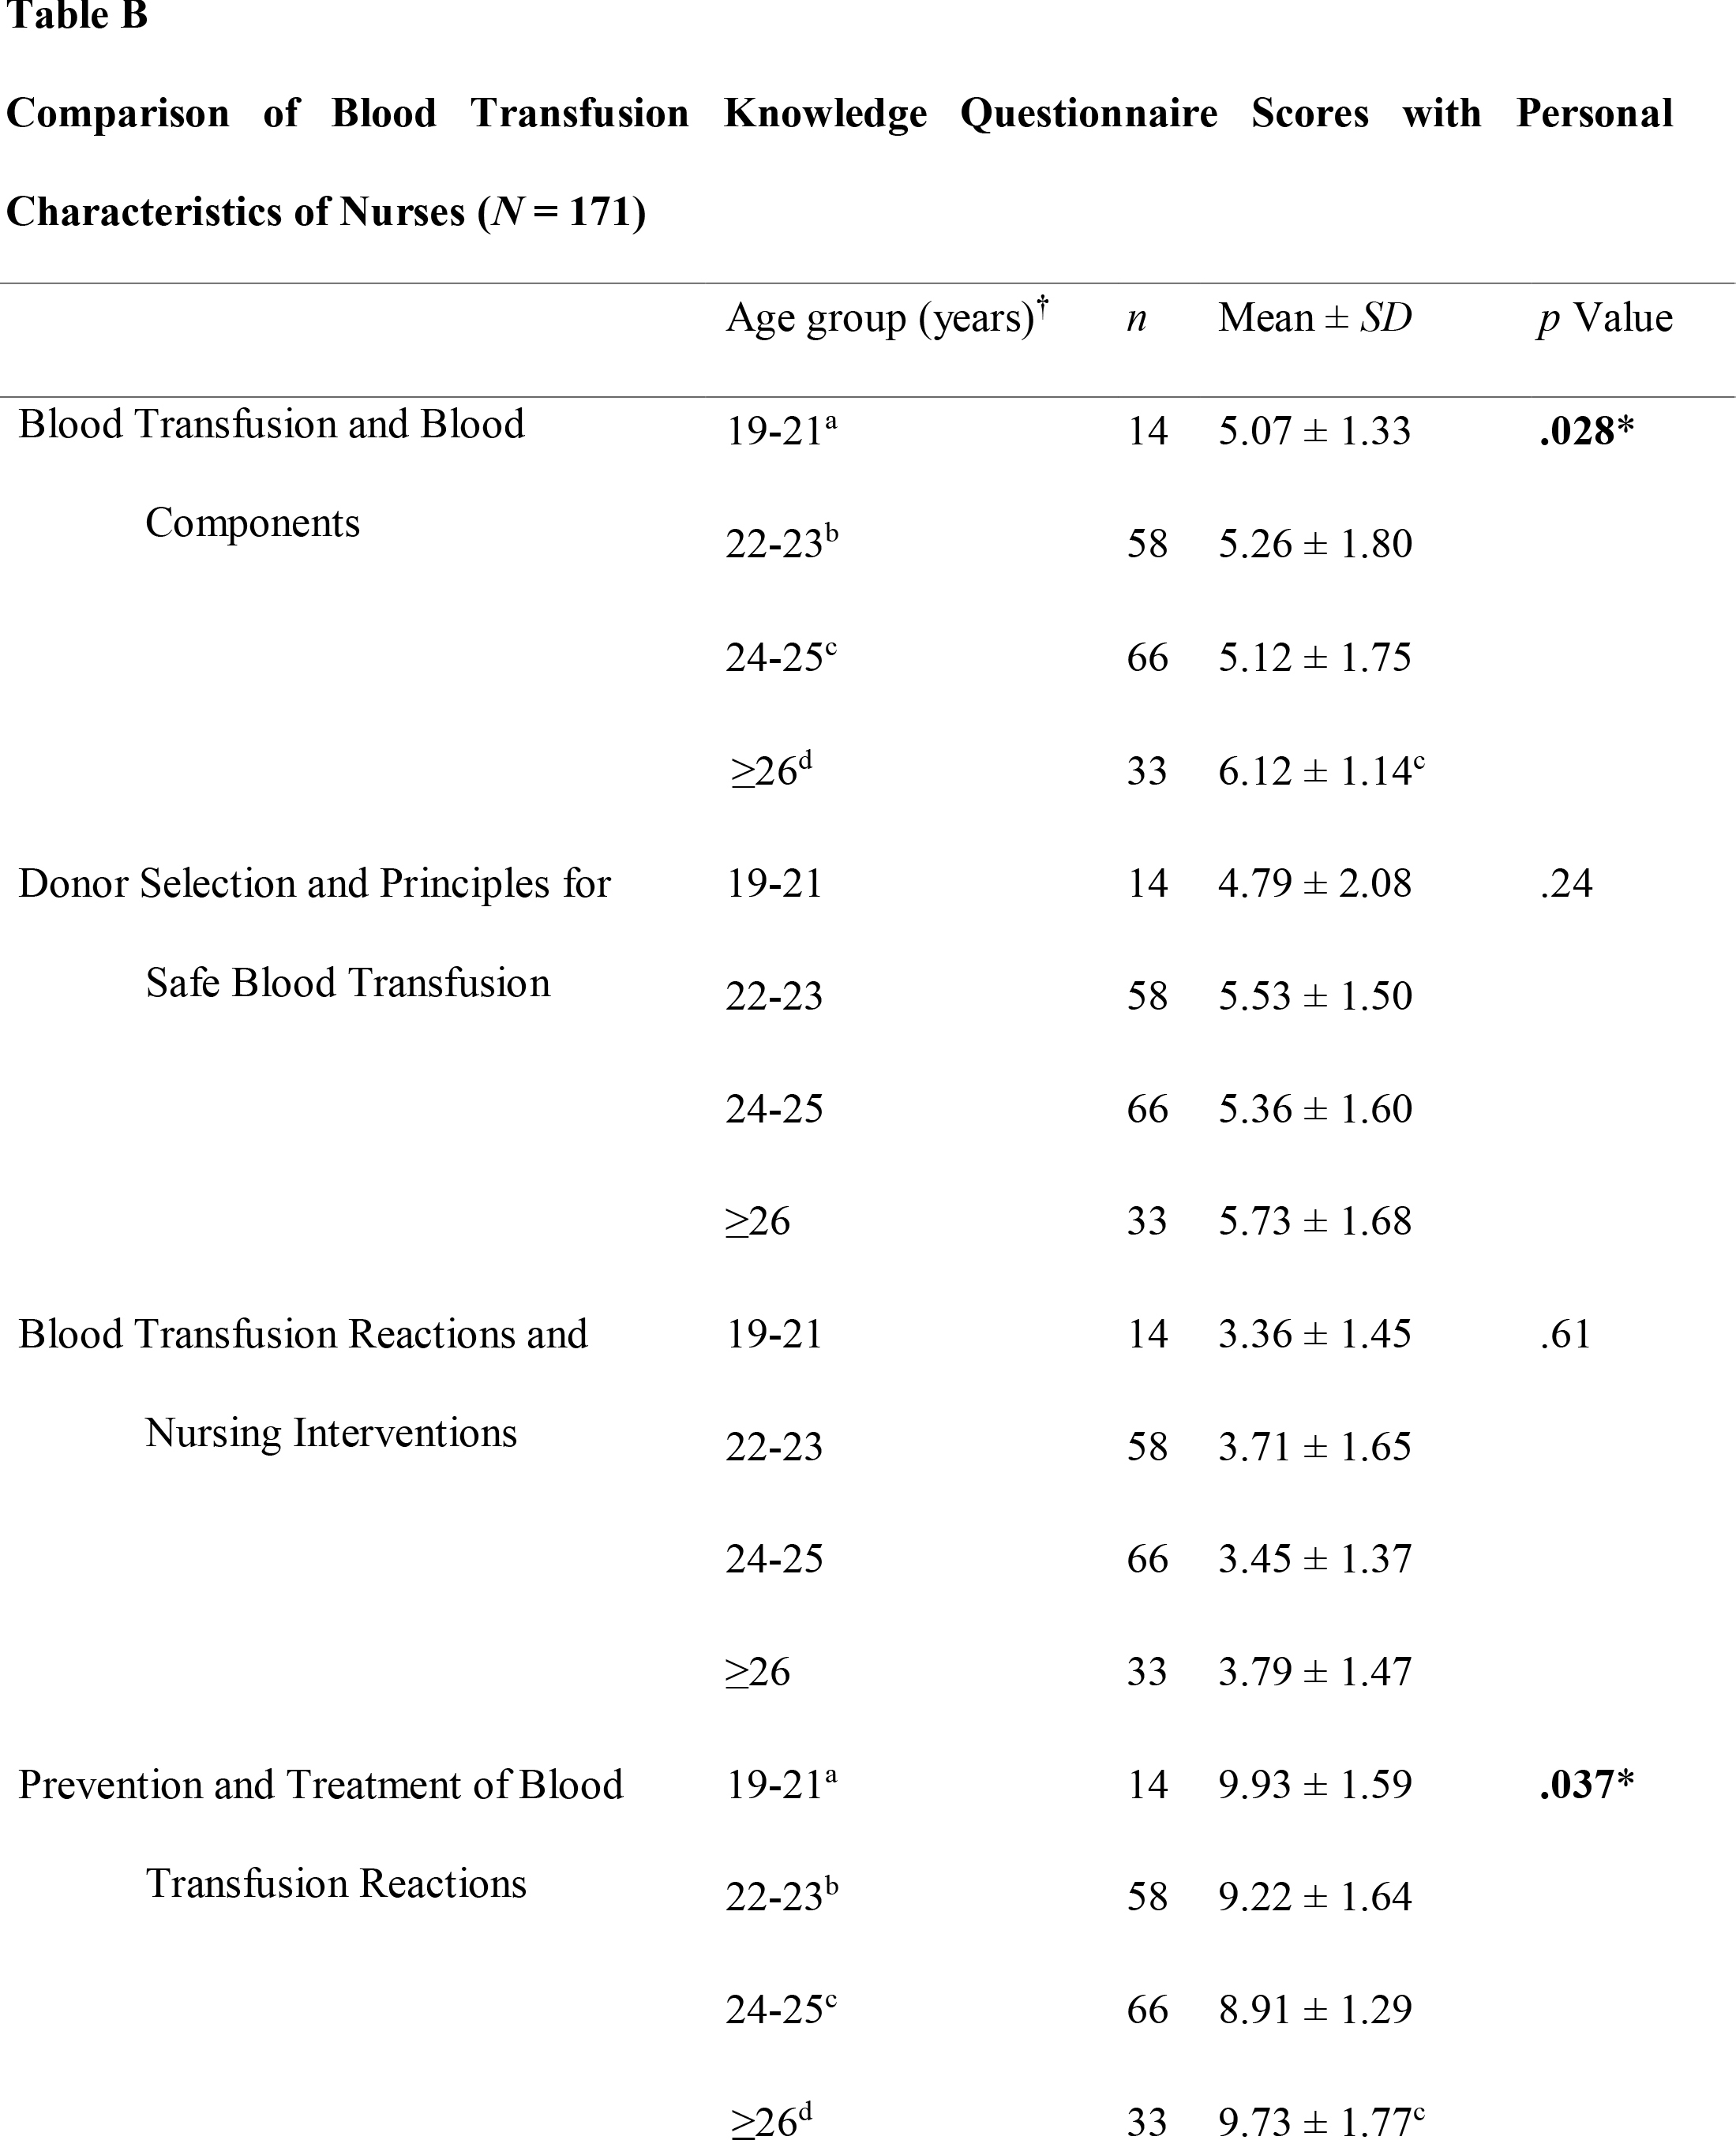 Comparison of Blood Transfusion Knowledge Questionnaire Scores with Personal Characteristics of Nurses (N = 171)